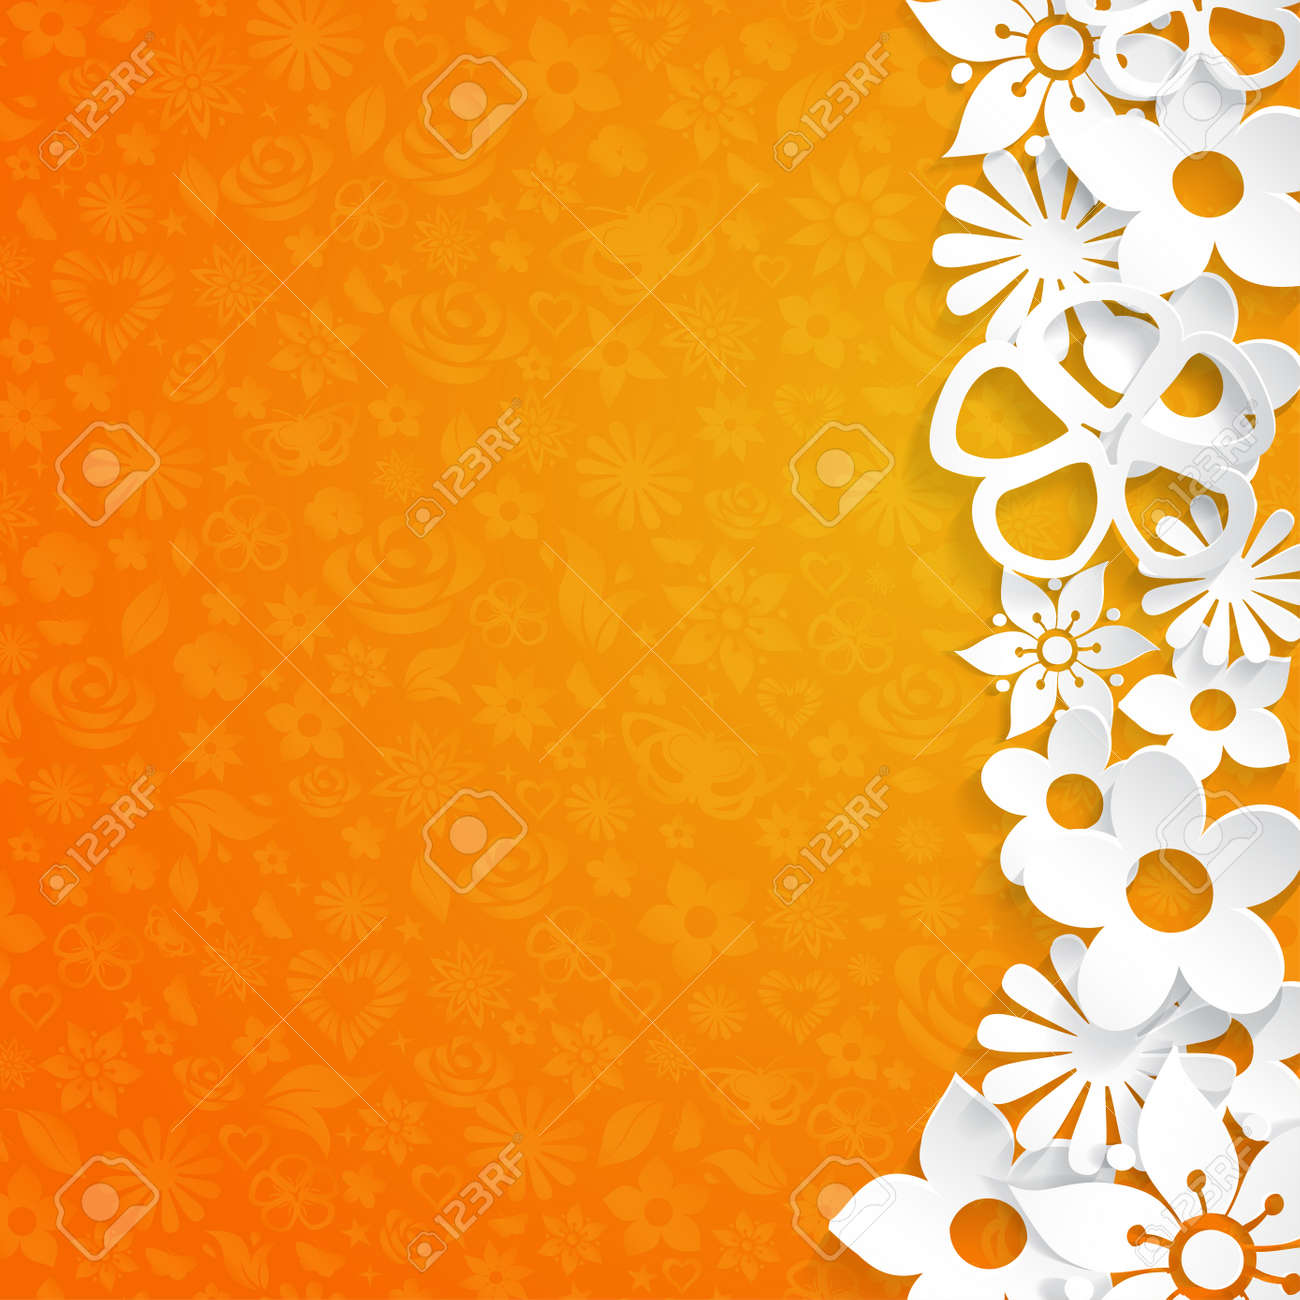 Orange background with flowers cut out of white paper